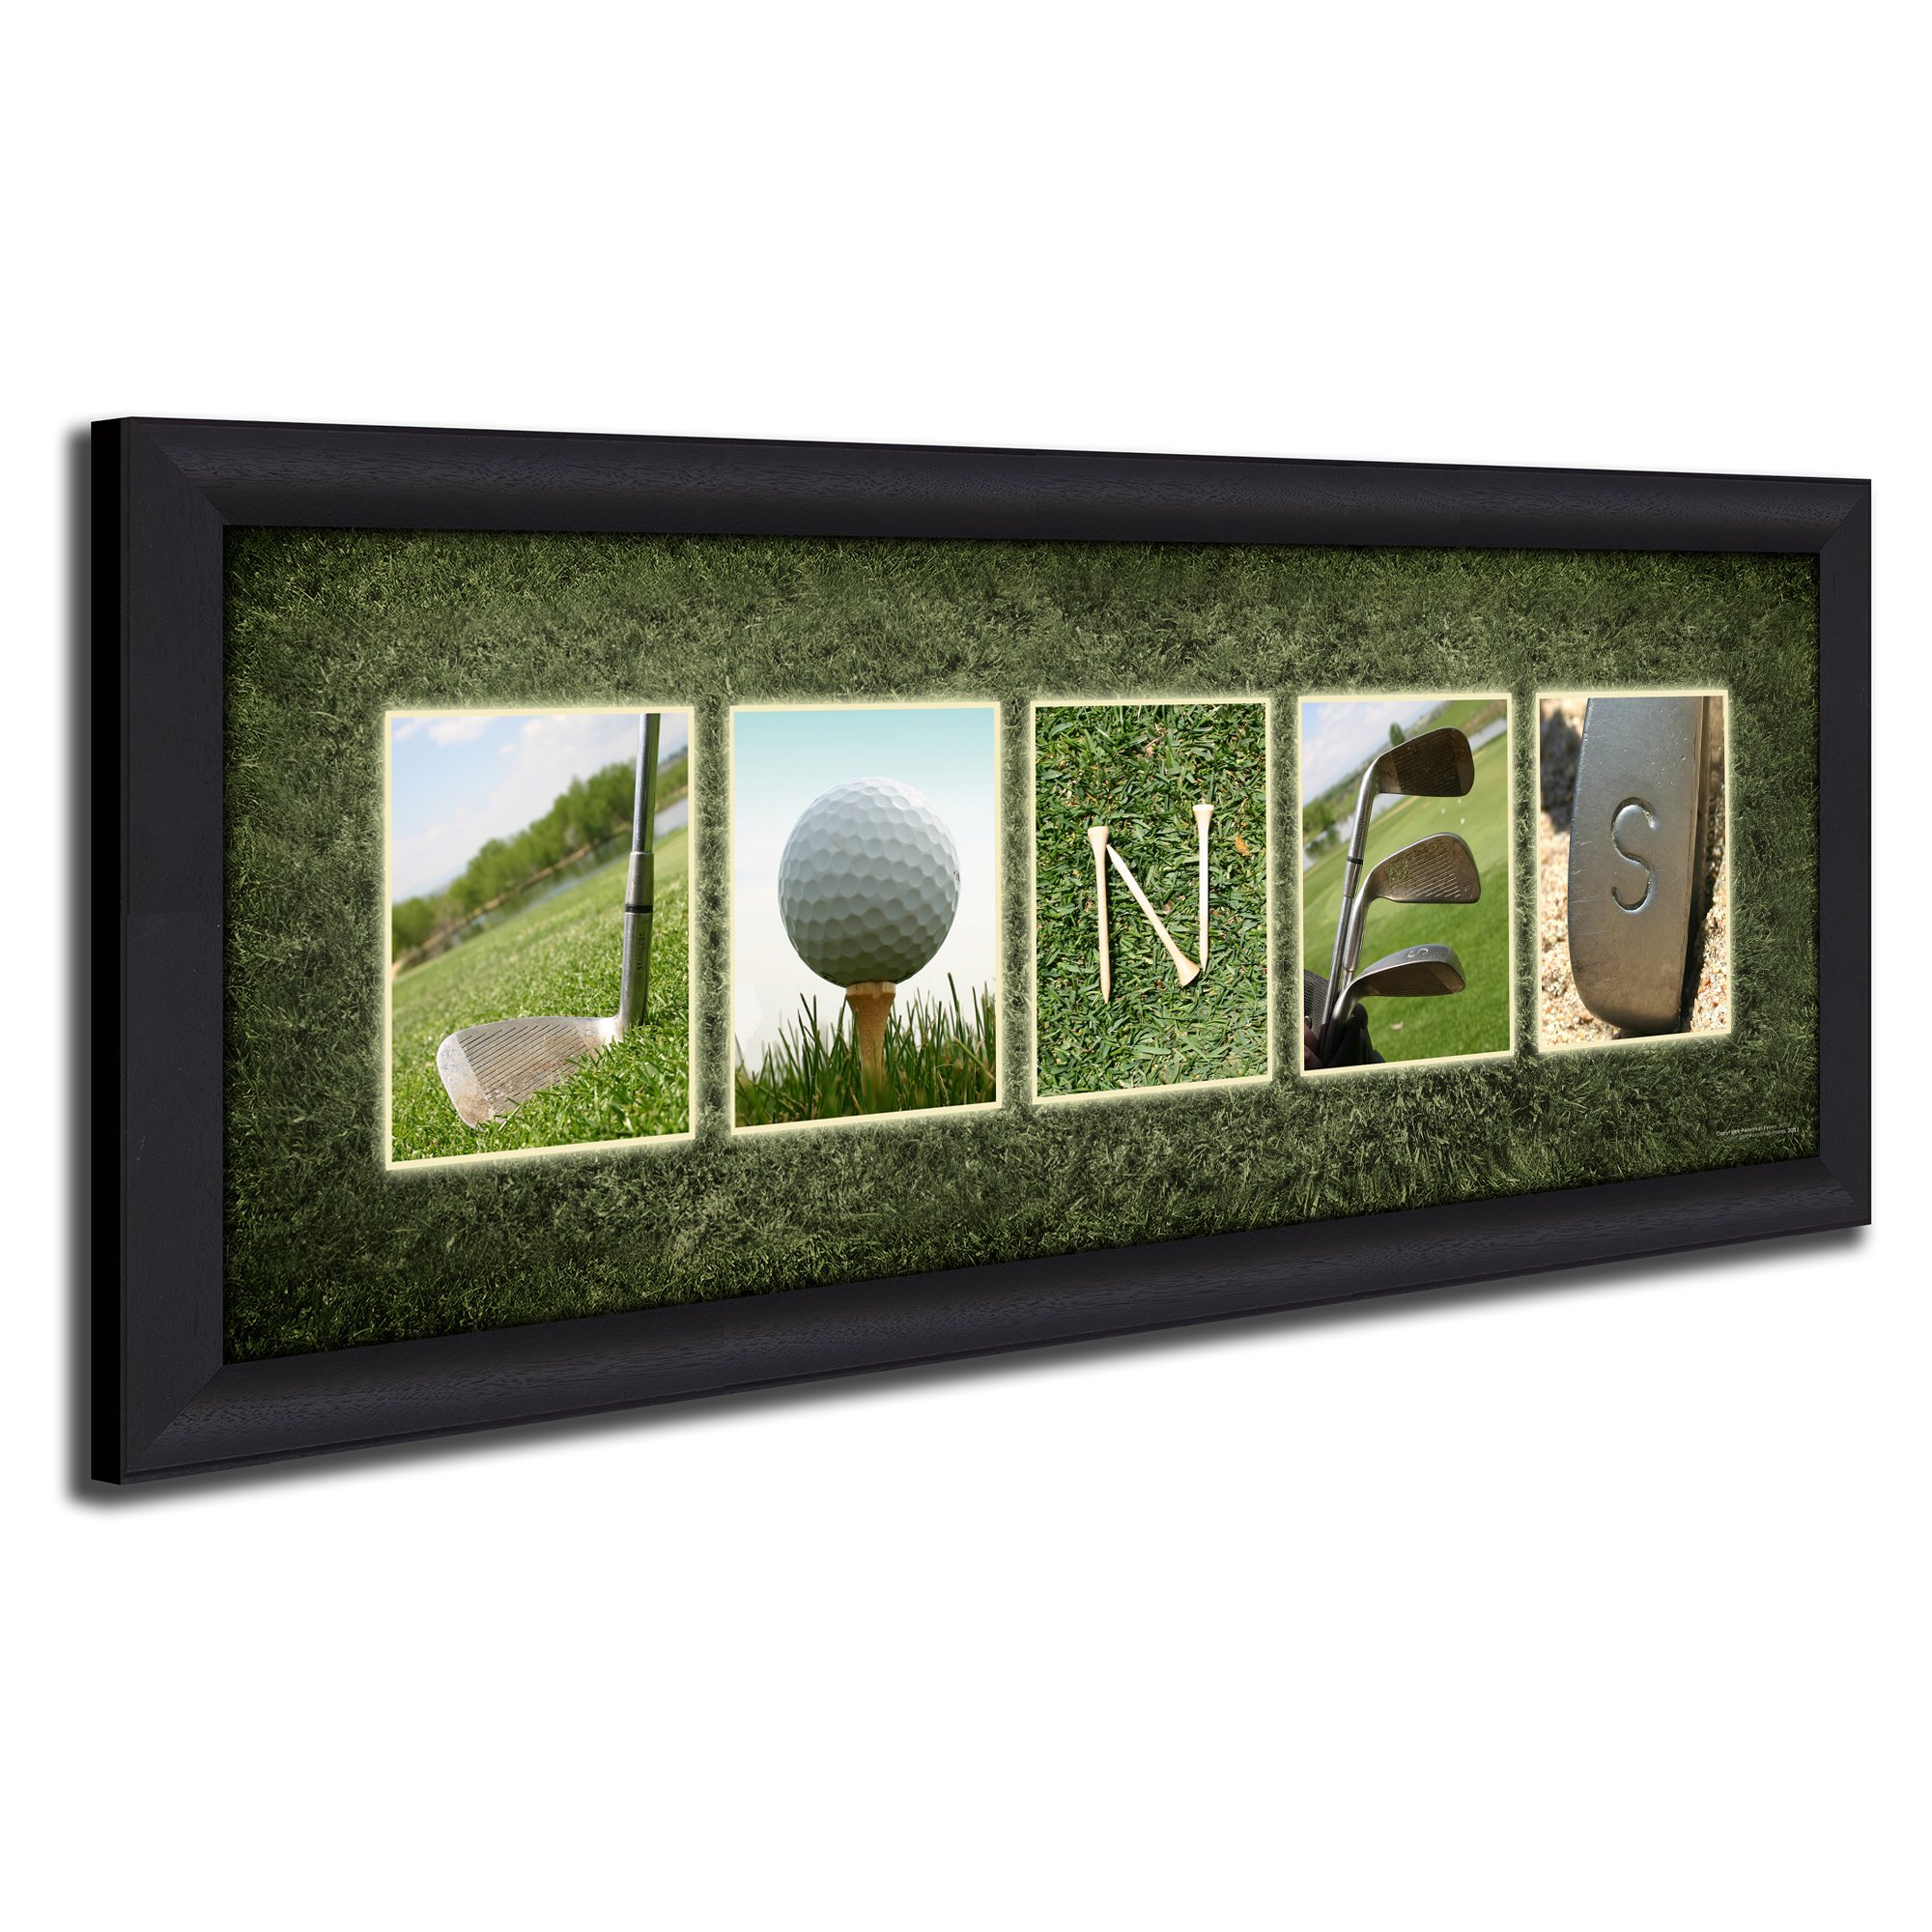 Framed Canvas - Personalized Golf Name Art - Perfect and unique customized gift for the golfer or golf enthusiast